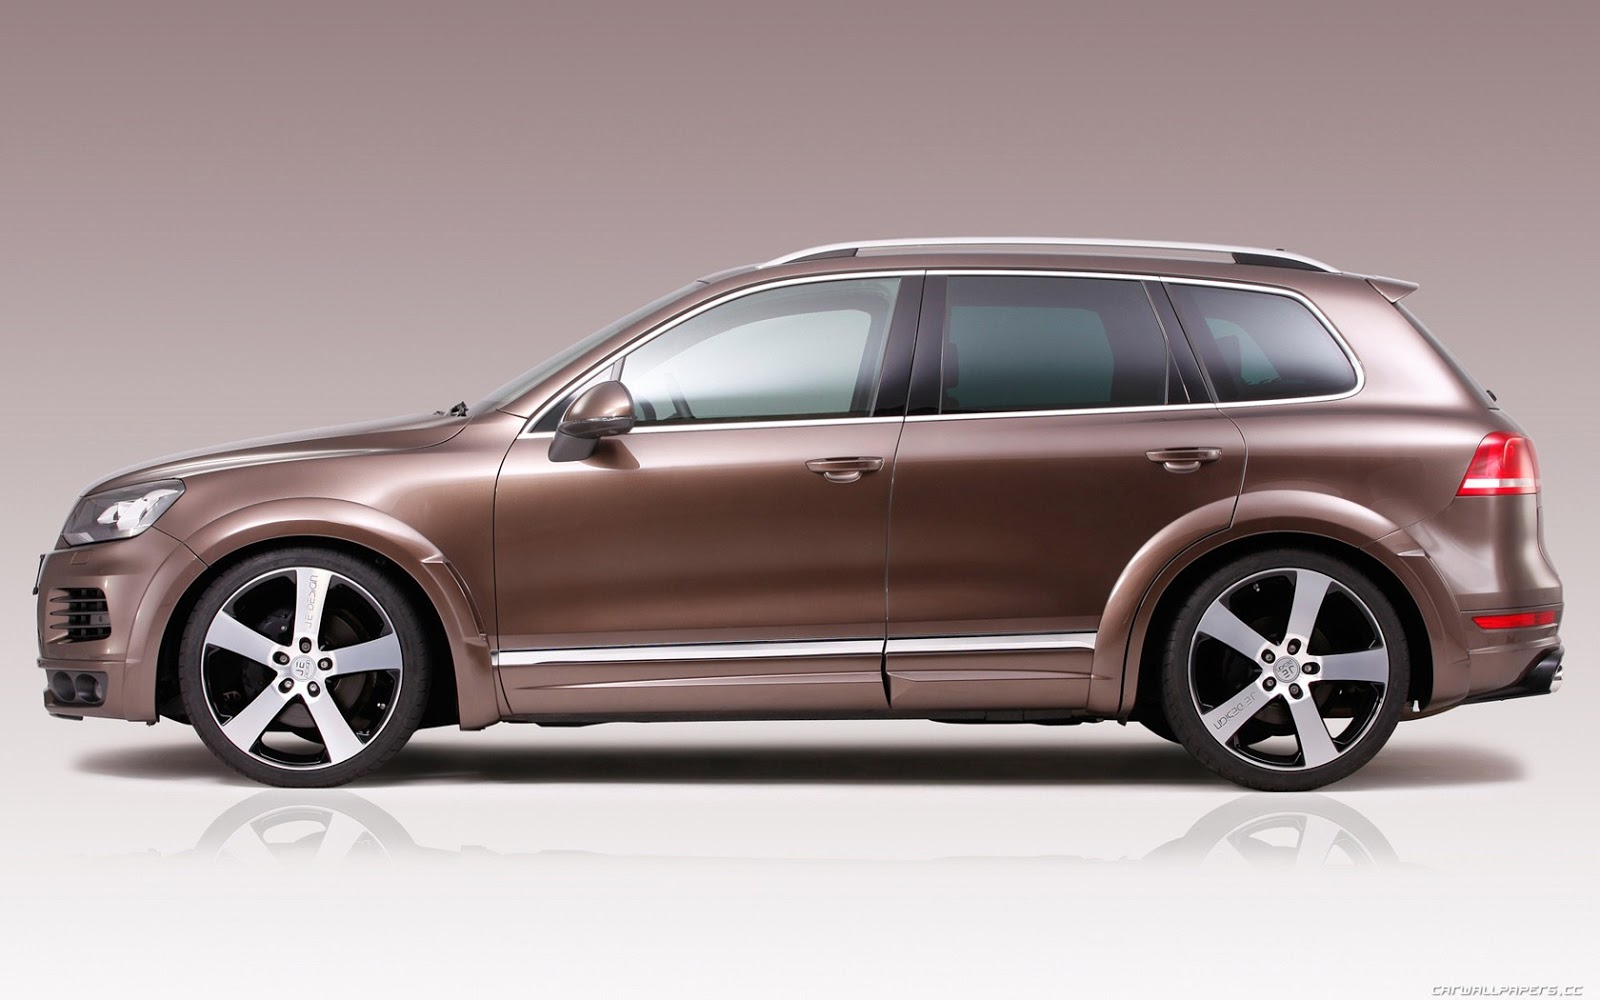 2015 volkswagen touareg v6 sport hybrid lux. Black Bedroom Furniture Sets. Home Design Ideas